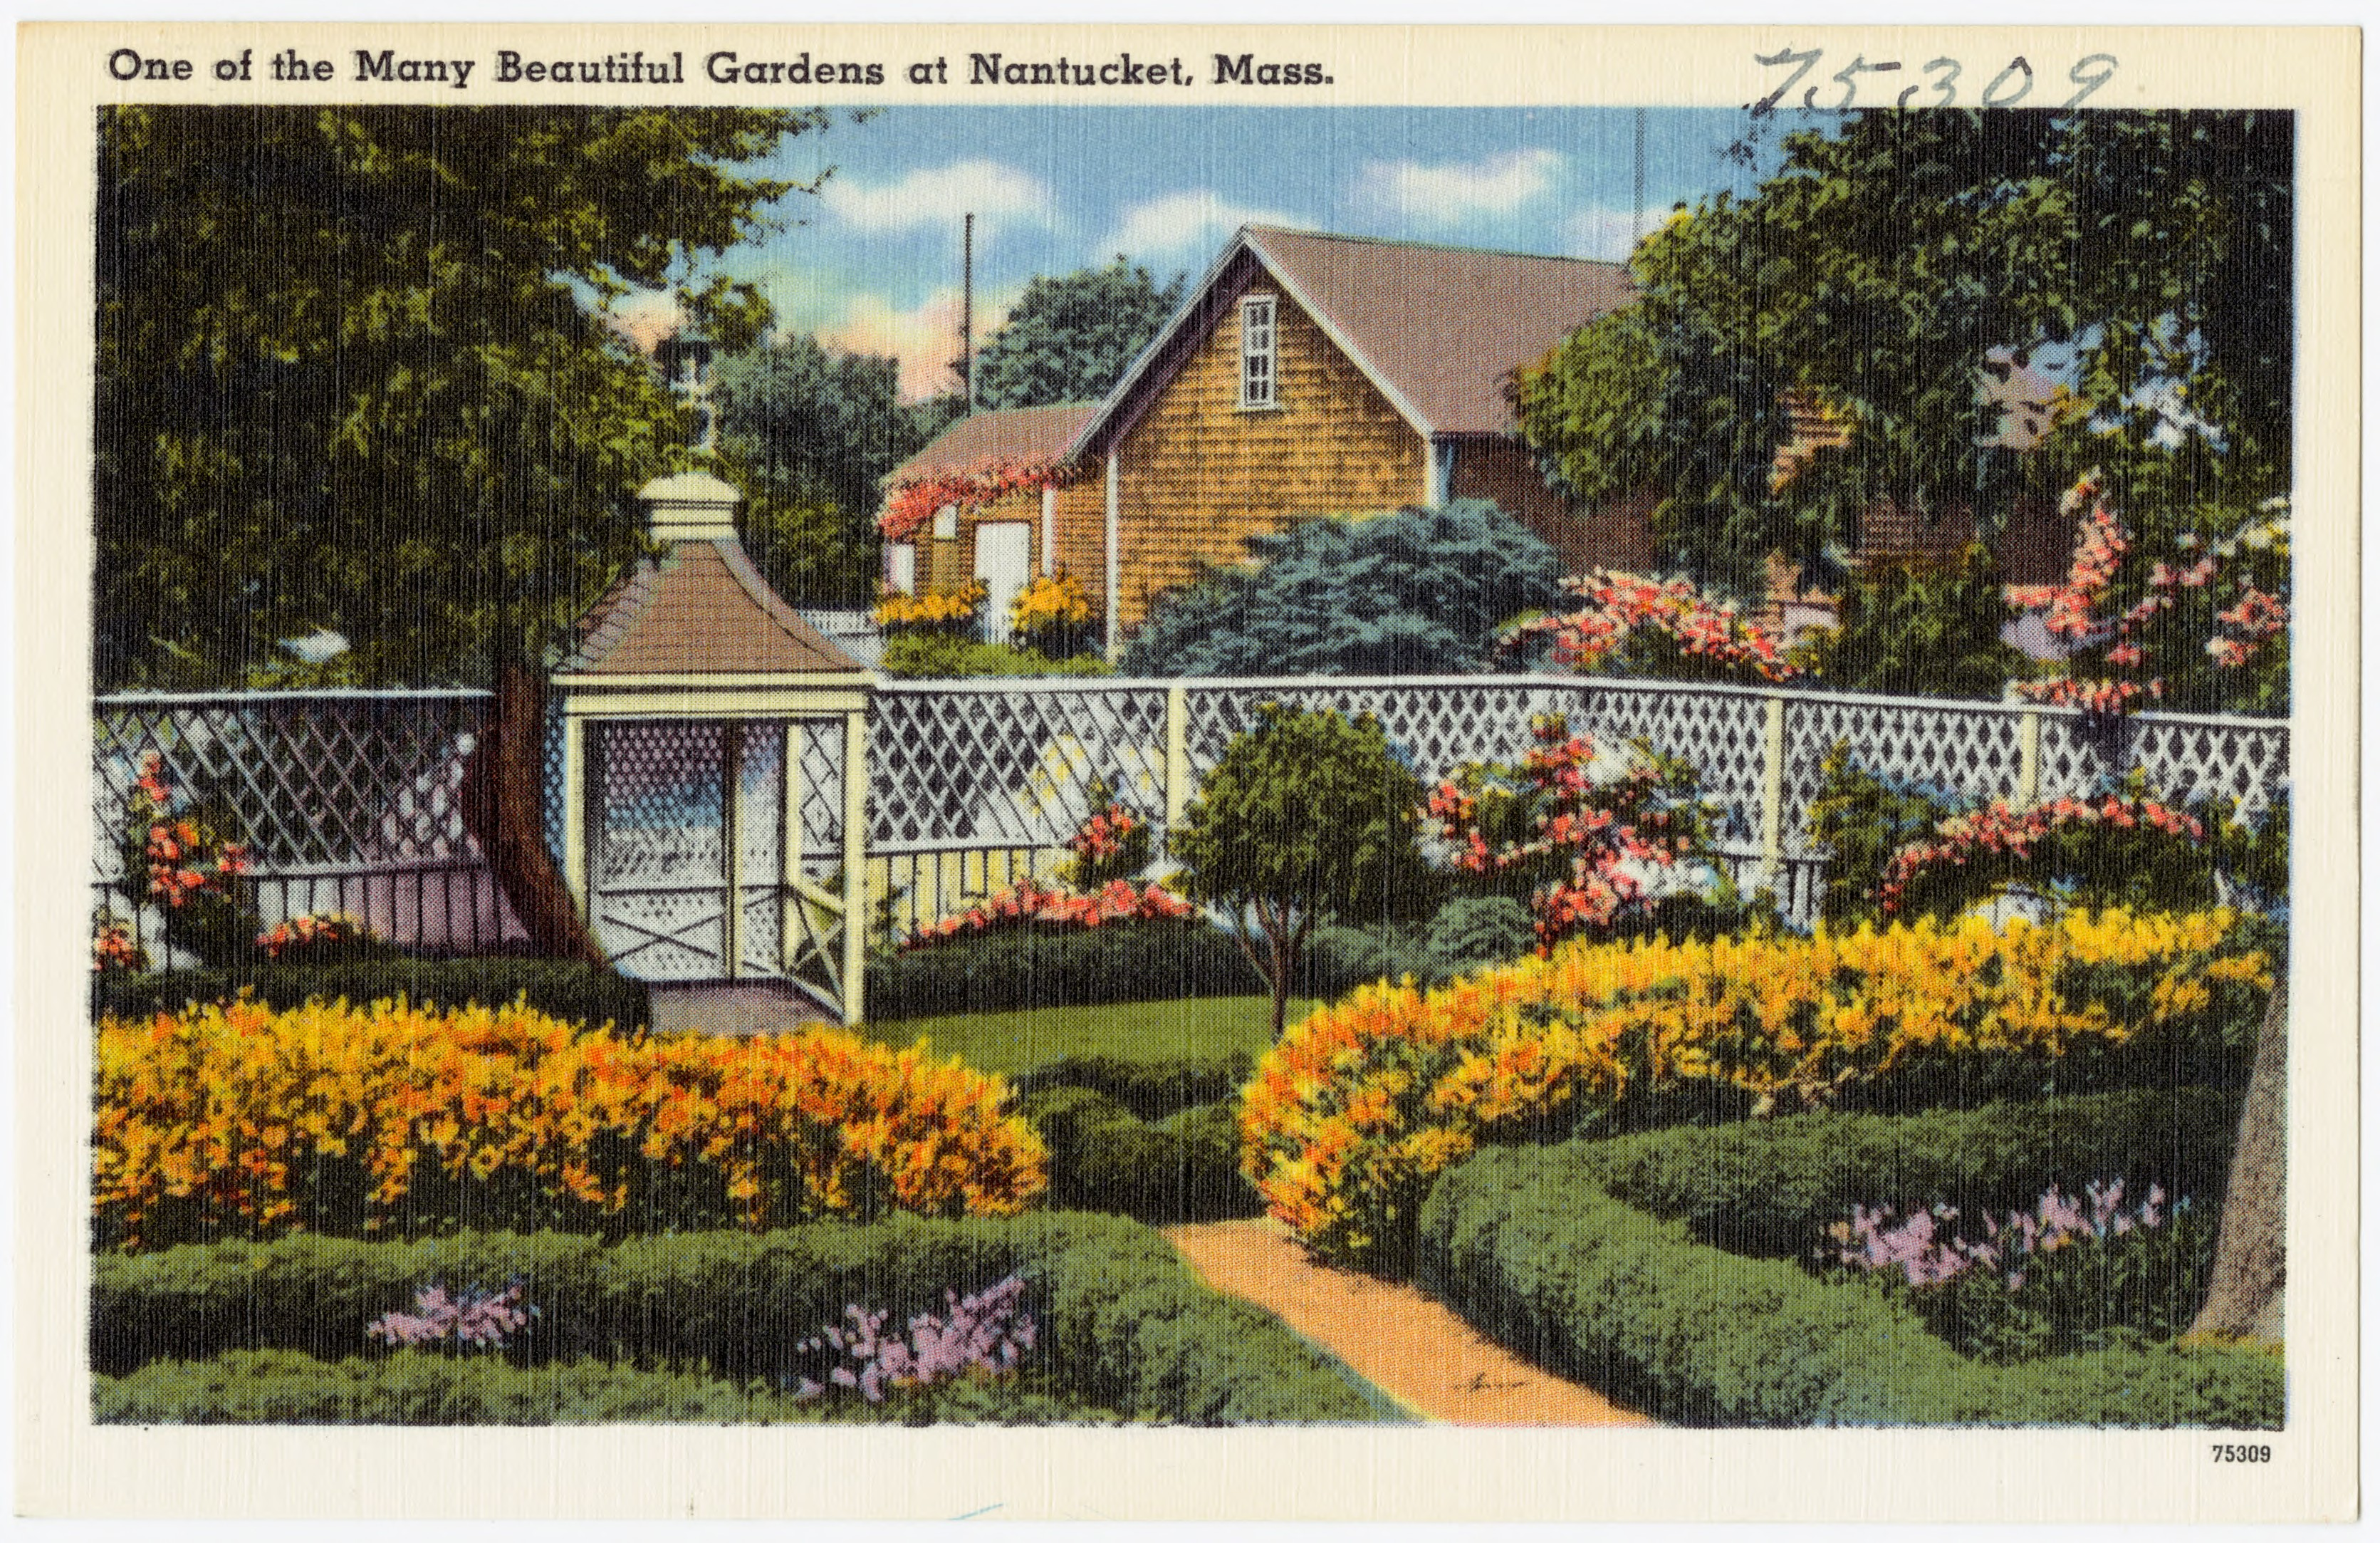 File:One Of The Many Beautiful Gardens At Nantucket, Mass (75309).